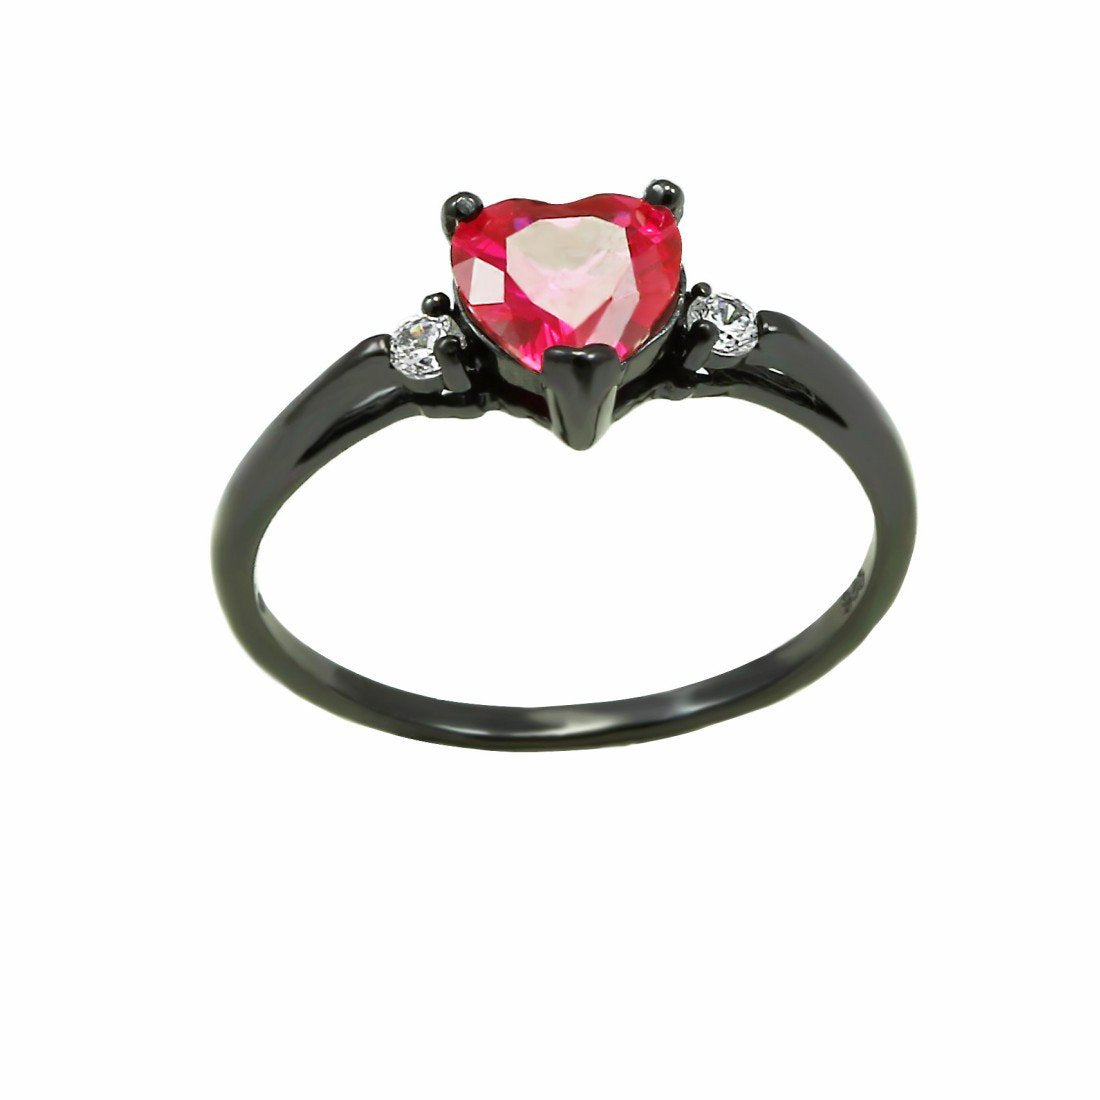 Heart Promise Ring Black Gold Rhodium Plated 925 Sterling Silver Simulated Ruby Round Cubic Zirconia